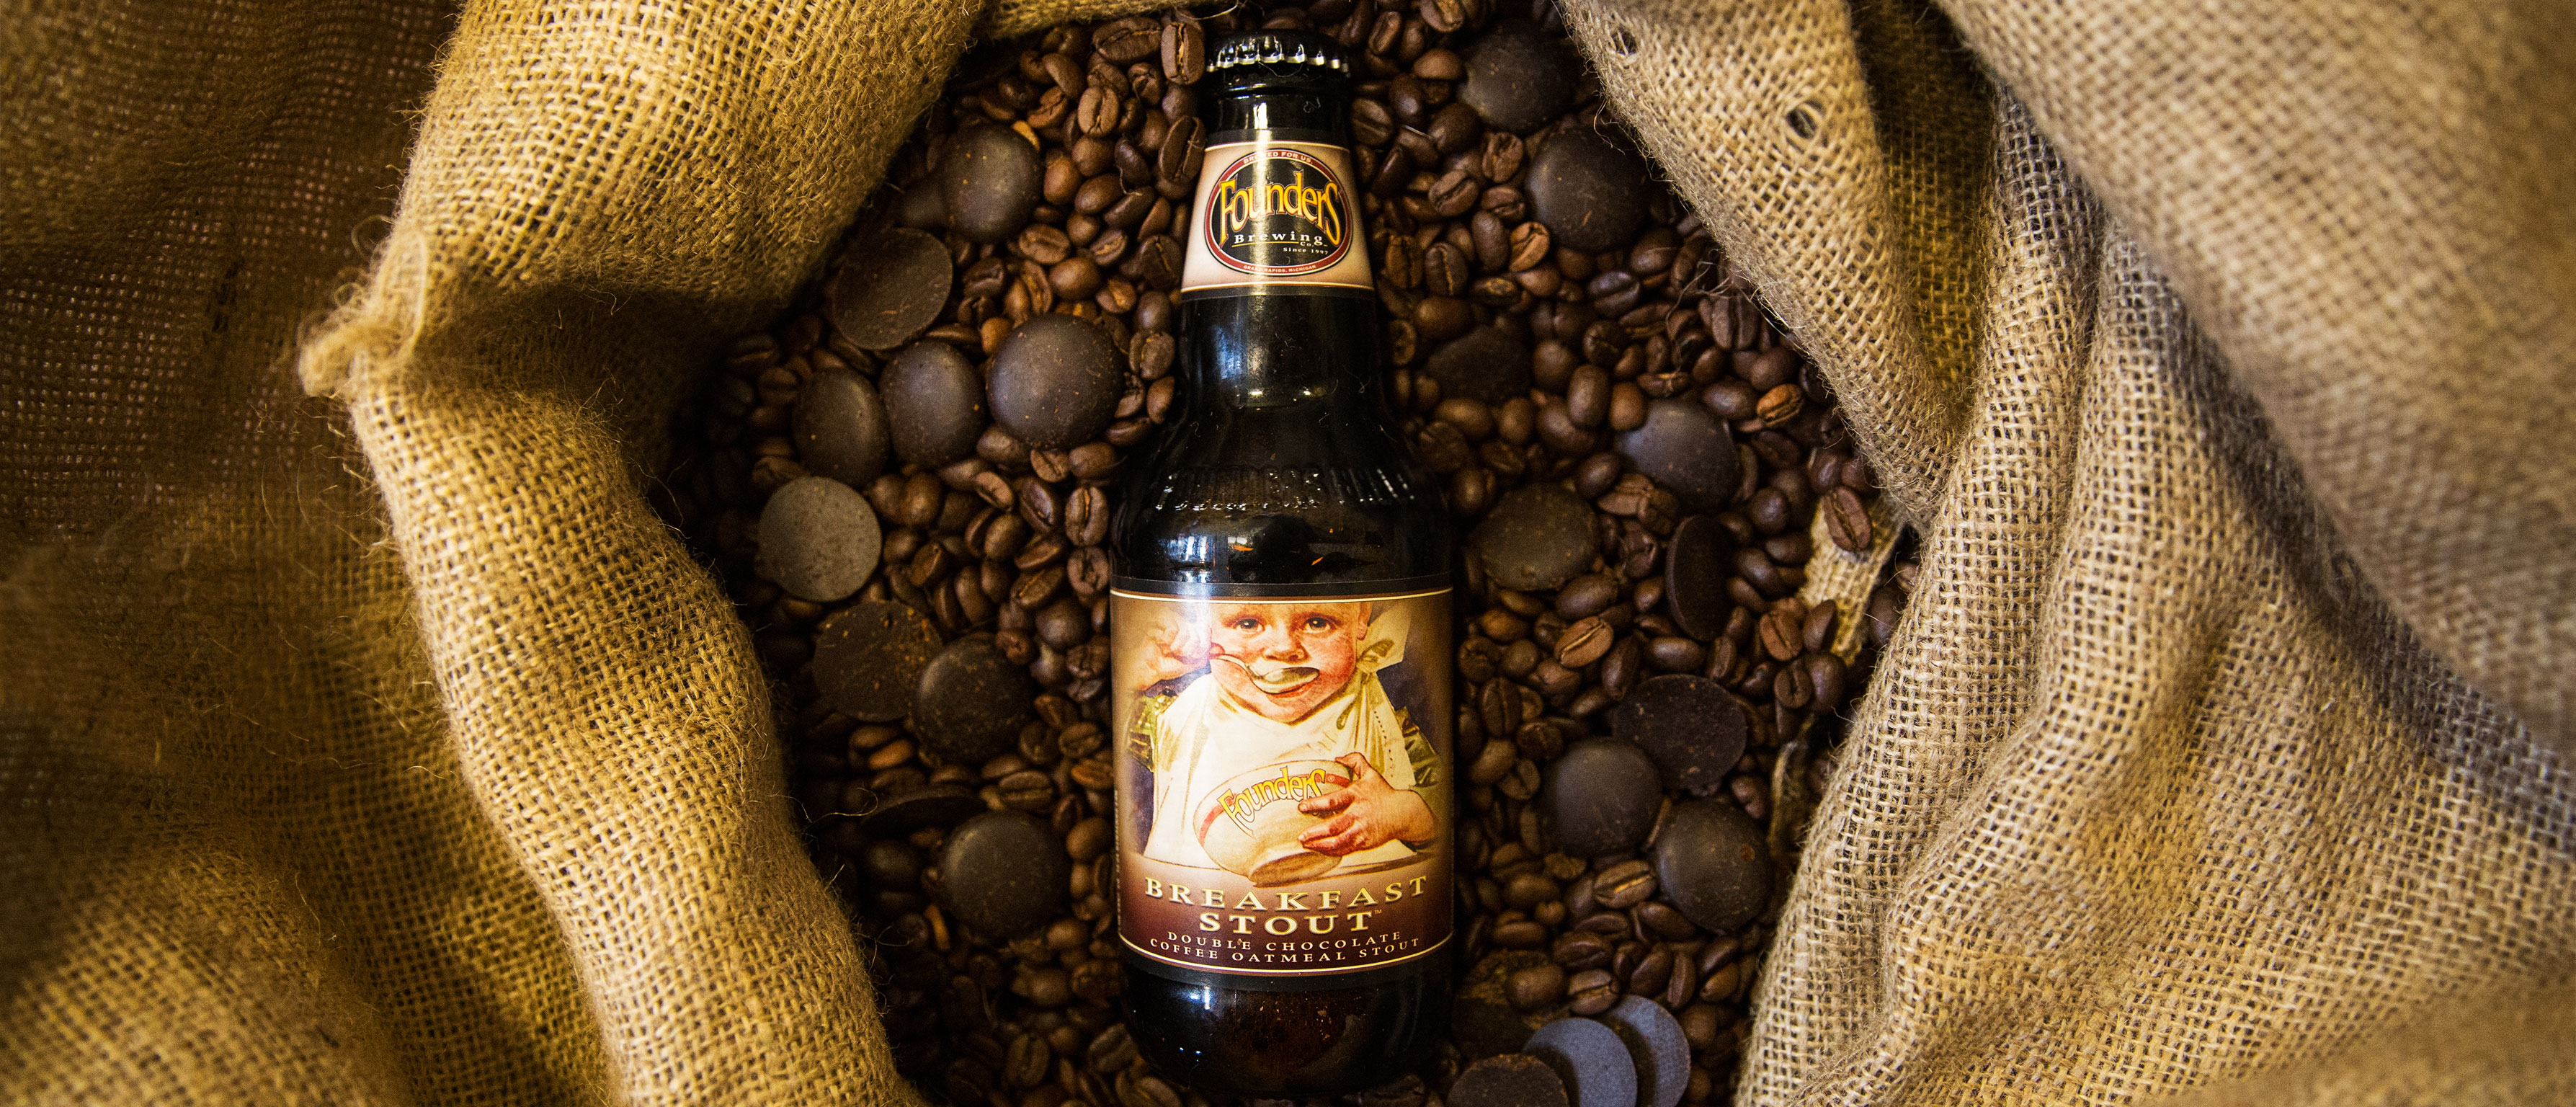 Founders Breakfast Stout bottle surrounded by chocolates and coffee beans